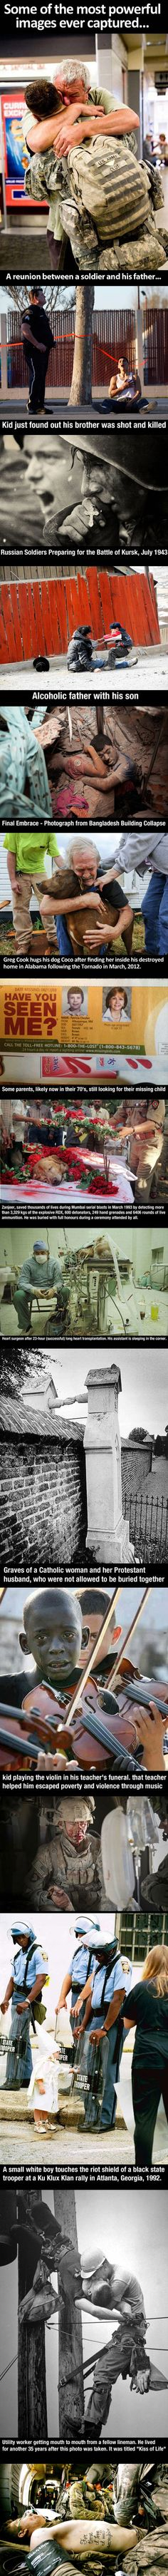 15 Powerful Photographs...alright, this made me emotional